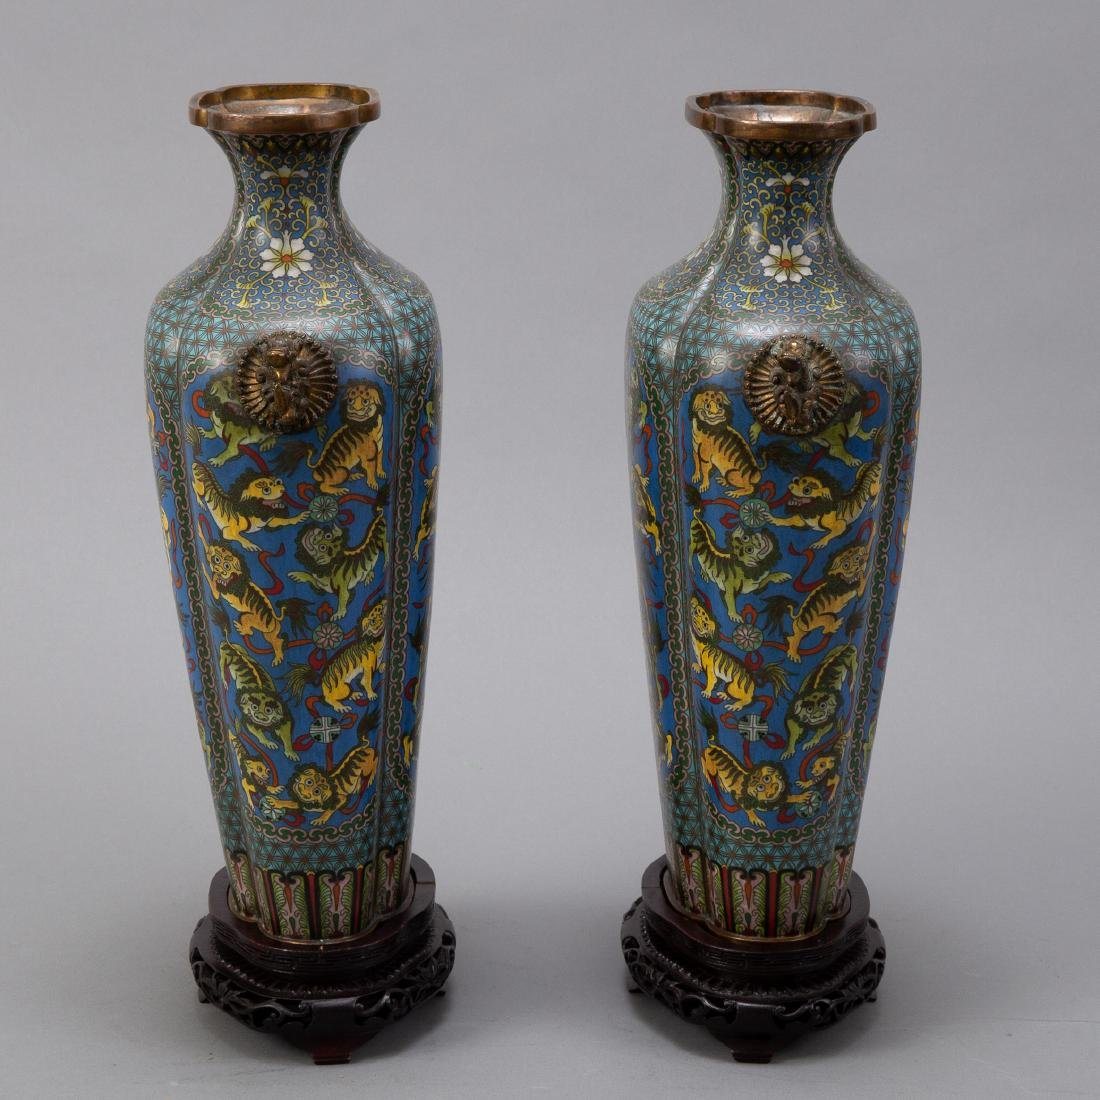 Pr 20th c. Japanese Cloisonne Vases with Foo Dogs - 4